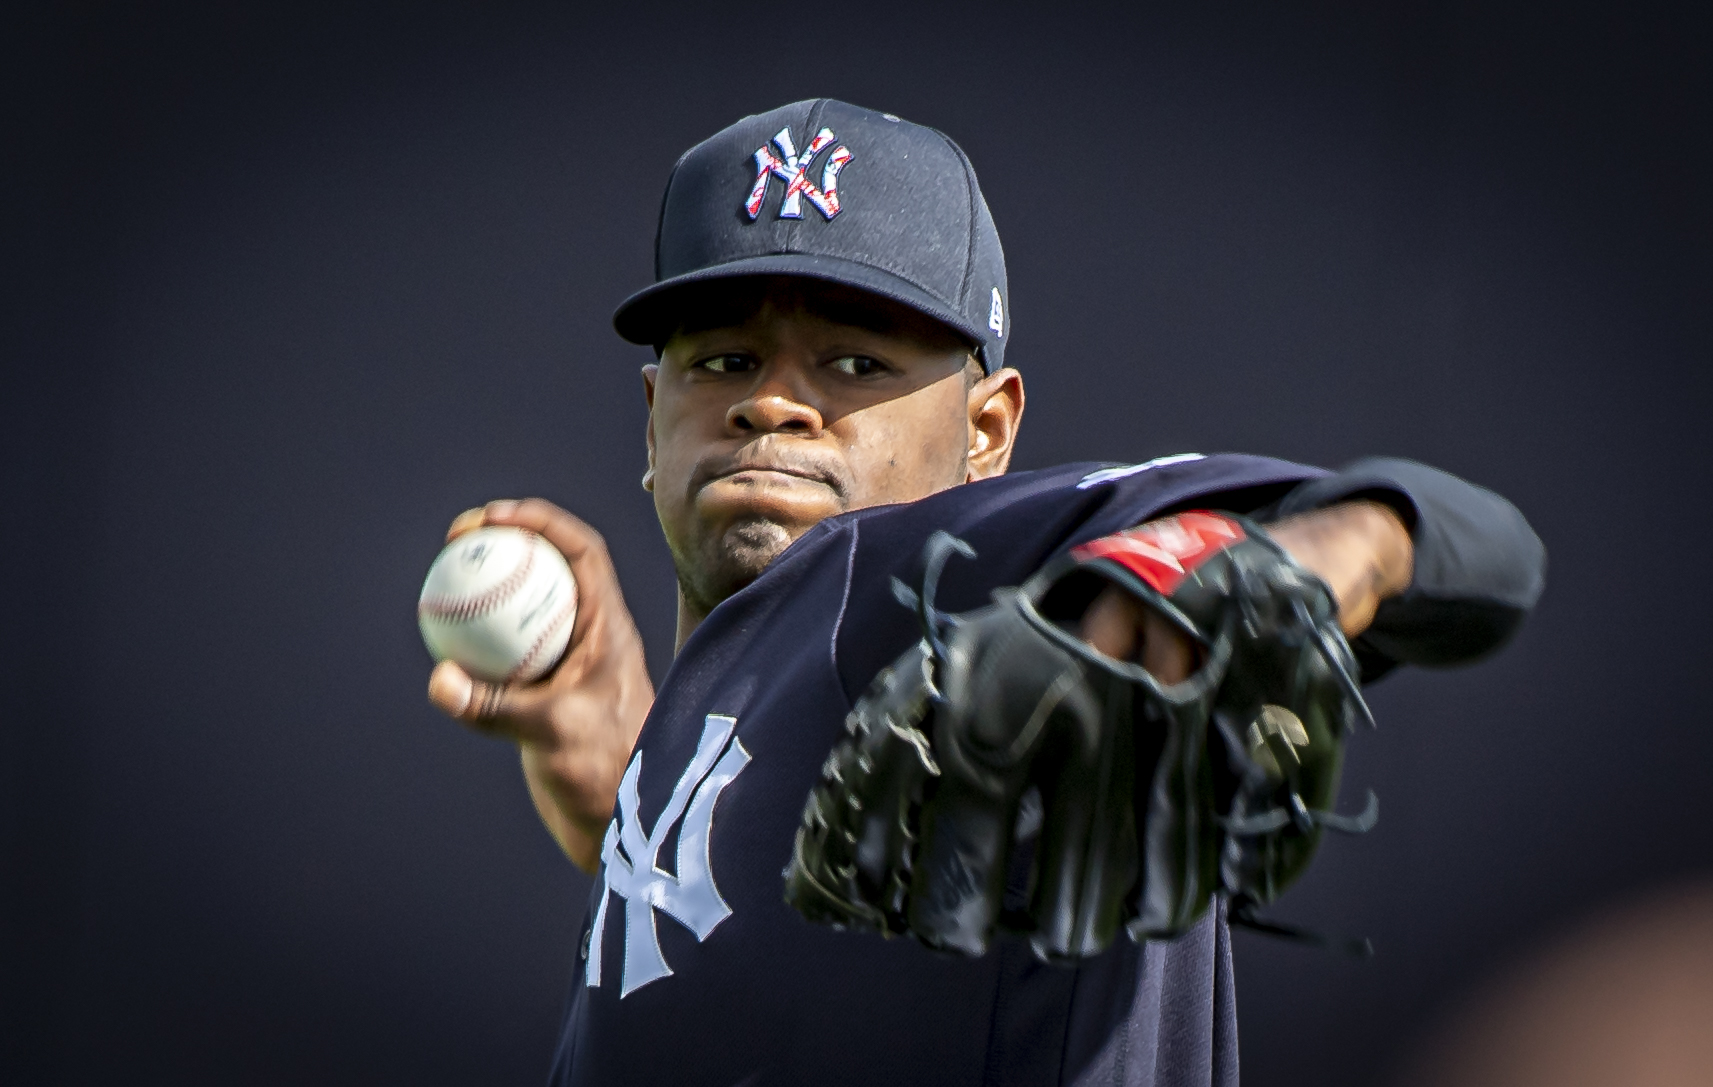 Luis Severino, the Yankees right-hander warms up his arm at spring training in 2020